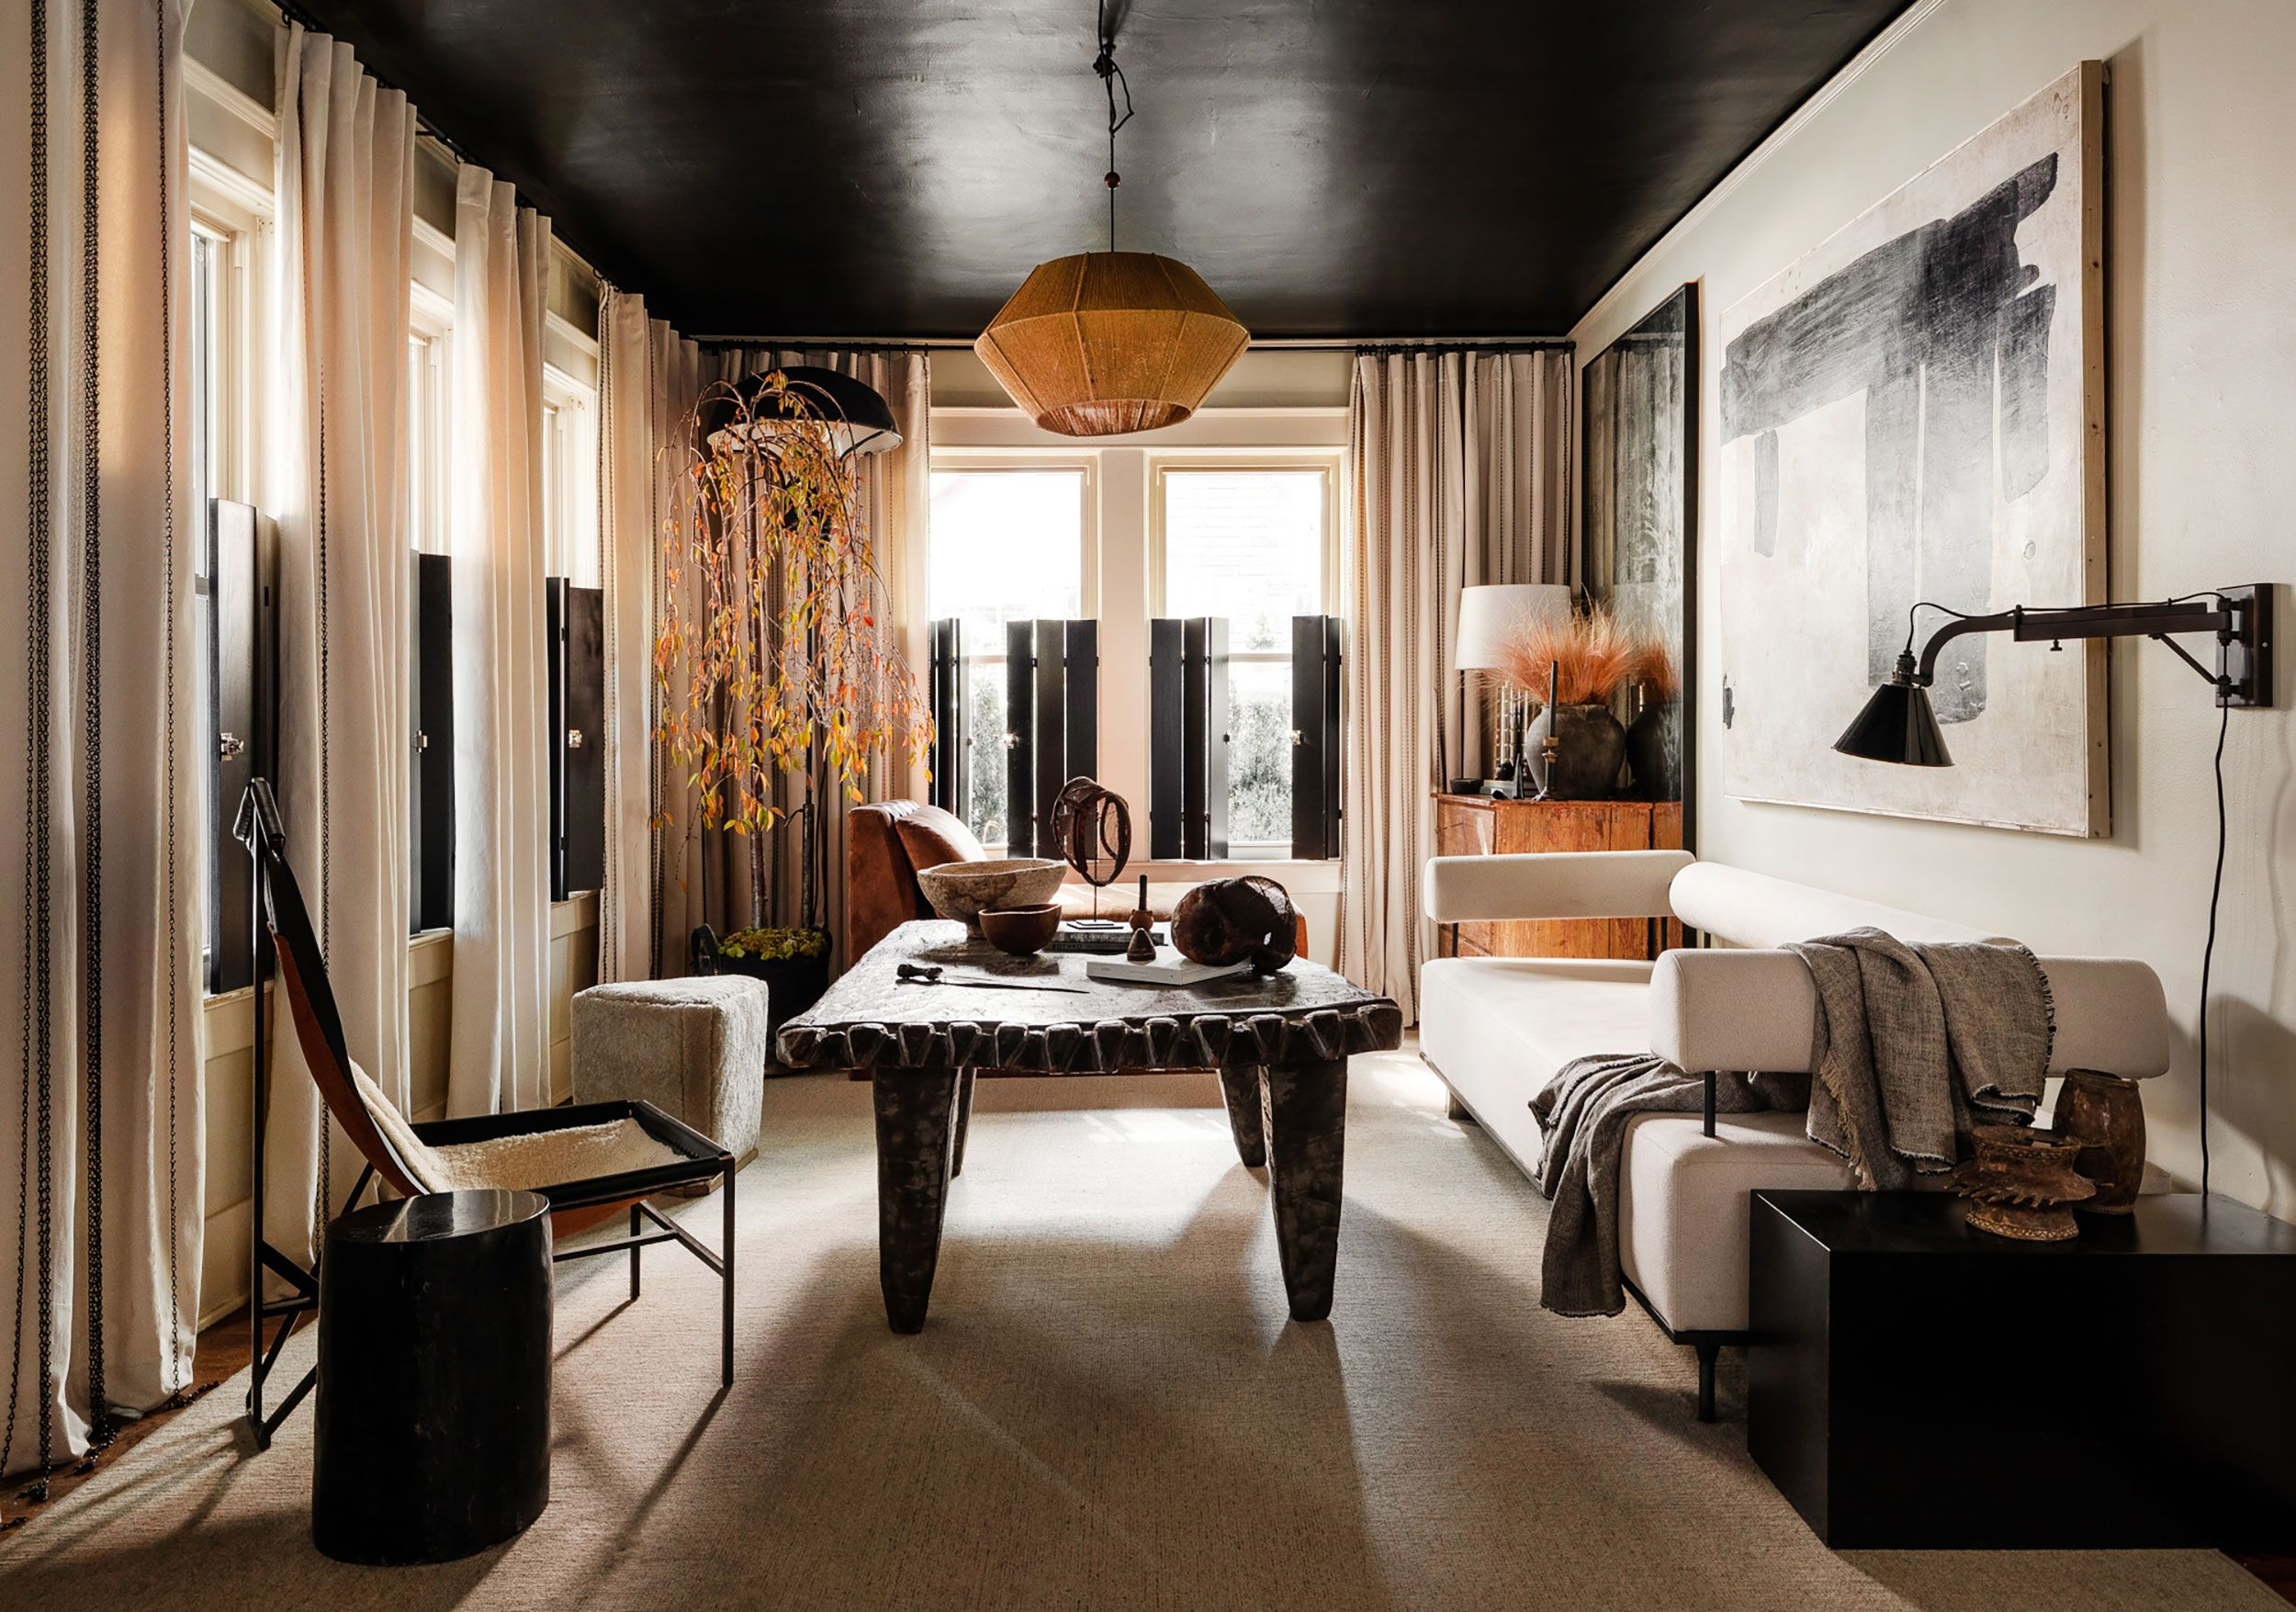 Texture and Handmade Touches Define This Moody Memphis Bungalow